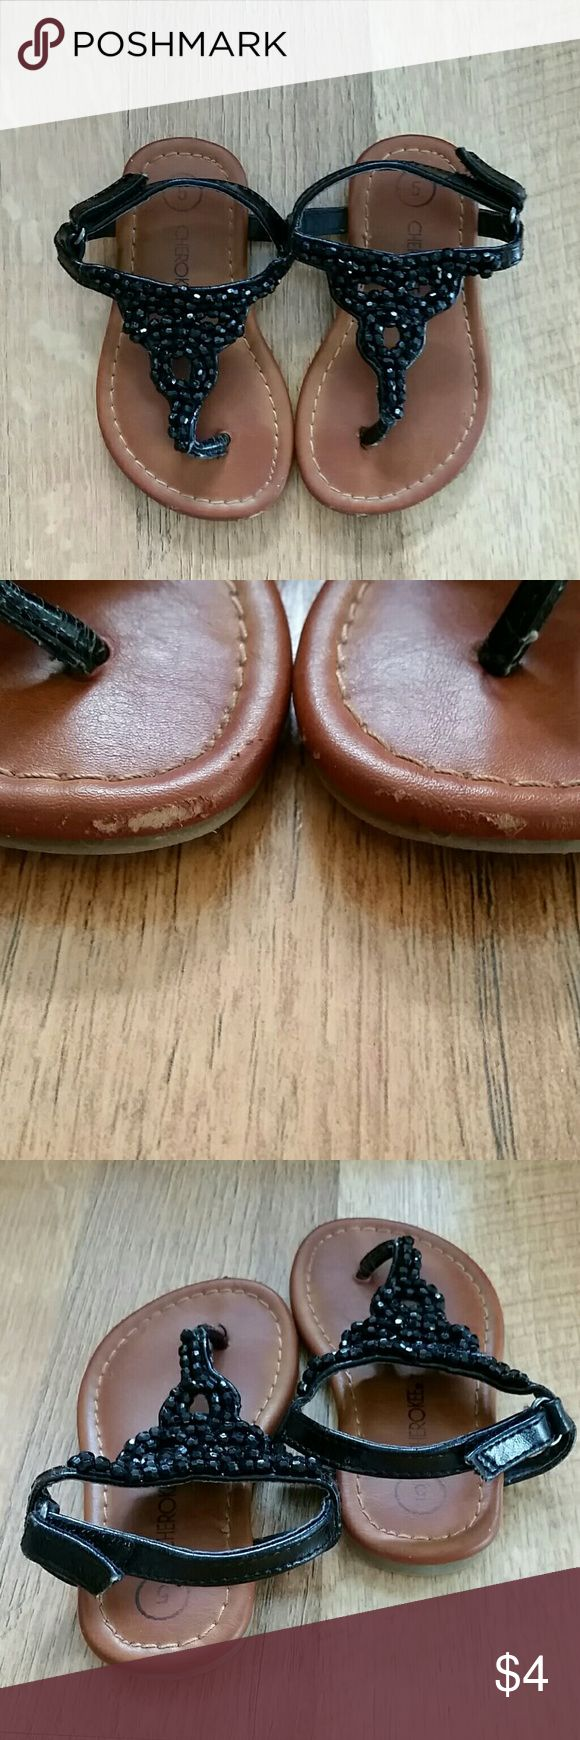 Kids beaded sandals Leather like footbeds, black beaded sandals with velcro fasteners on back. Cherokee Shoes Sandals & Flip Flops